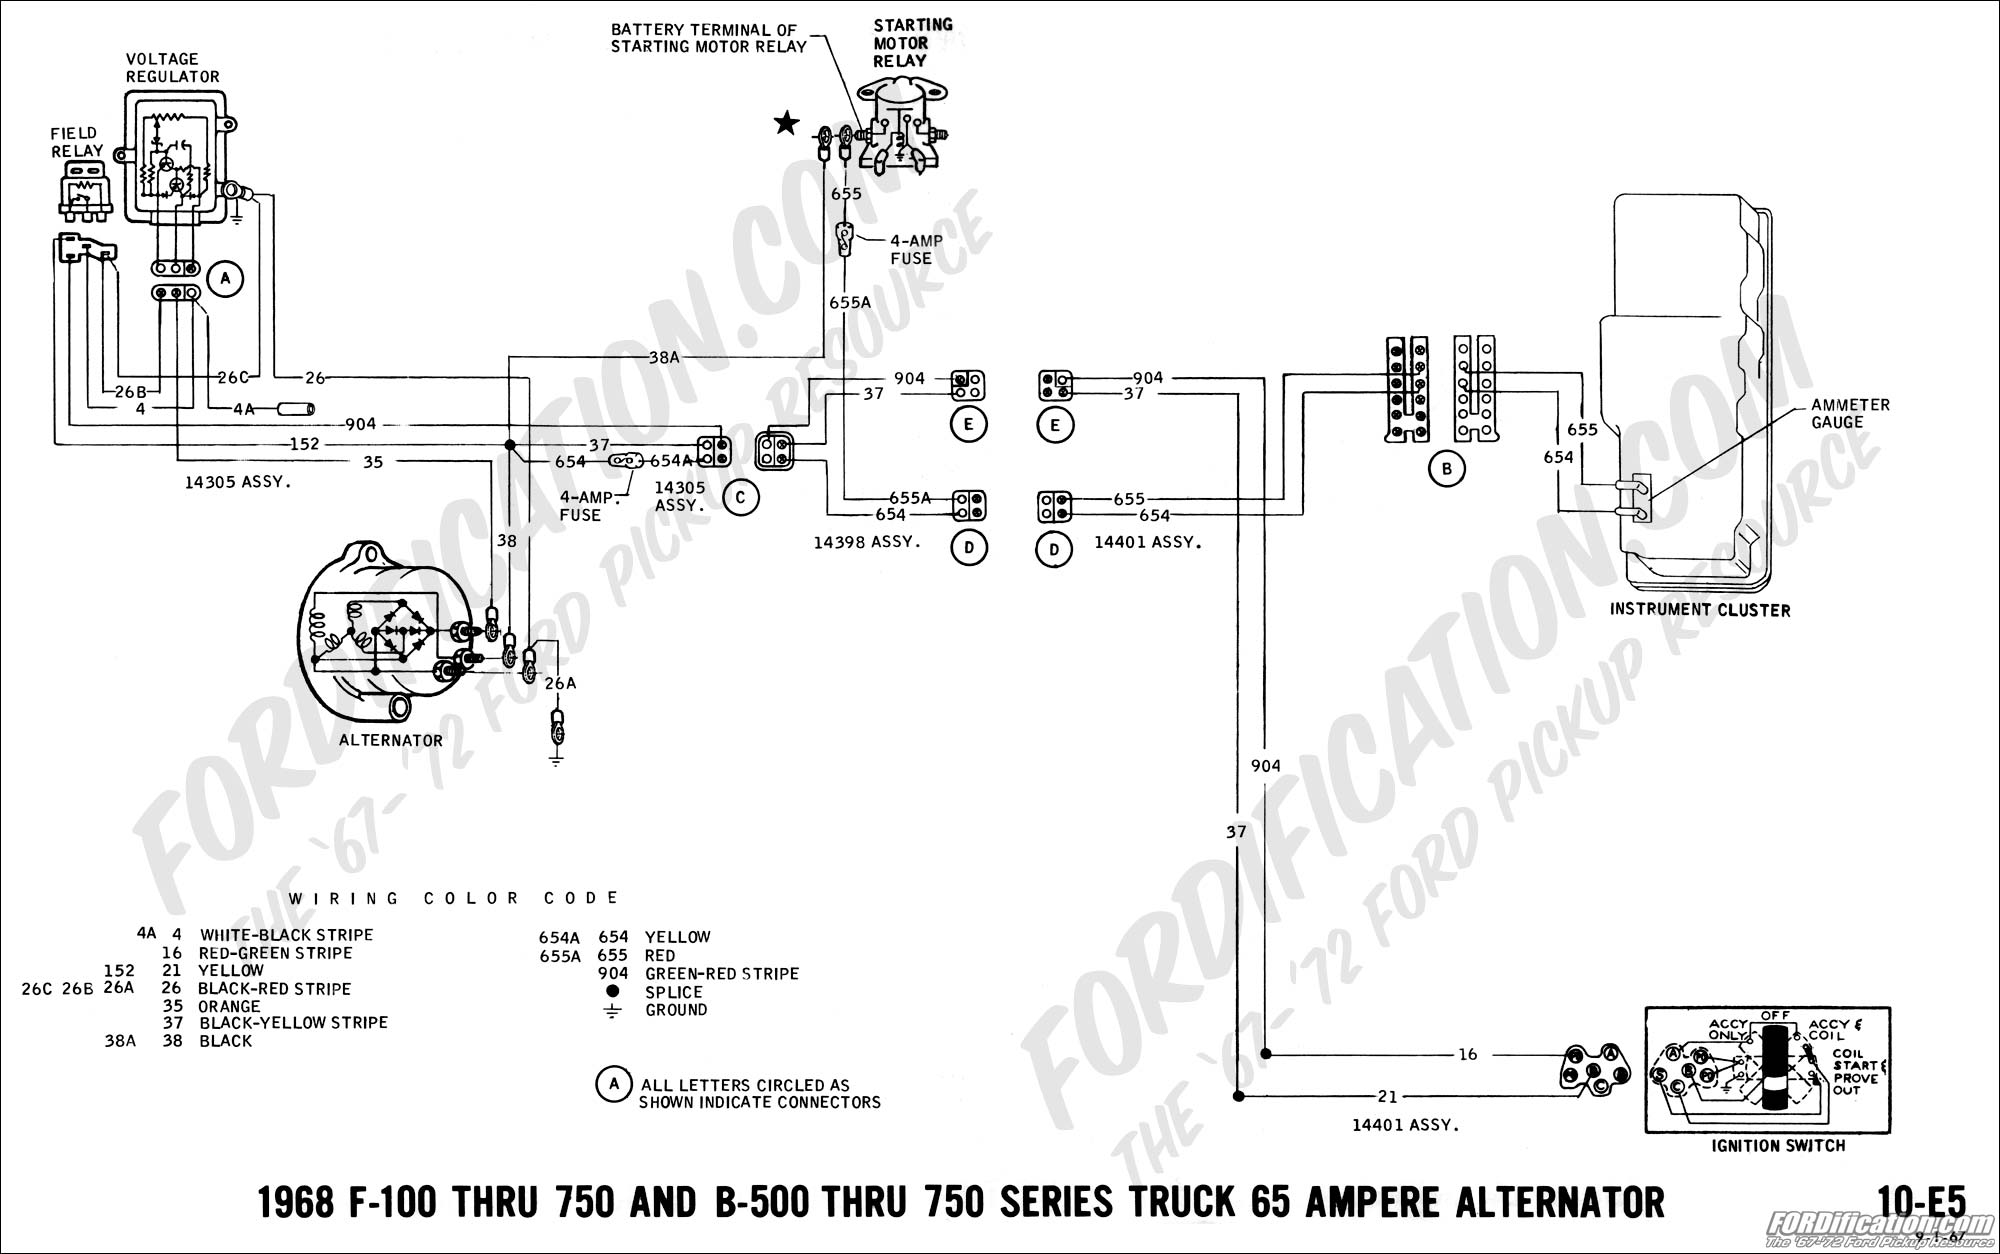 68 07 ford truck technical drawings and schematics section h wiring Ford 3 Wire Alternator Diagram at soozxer.org